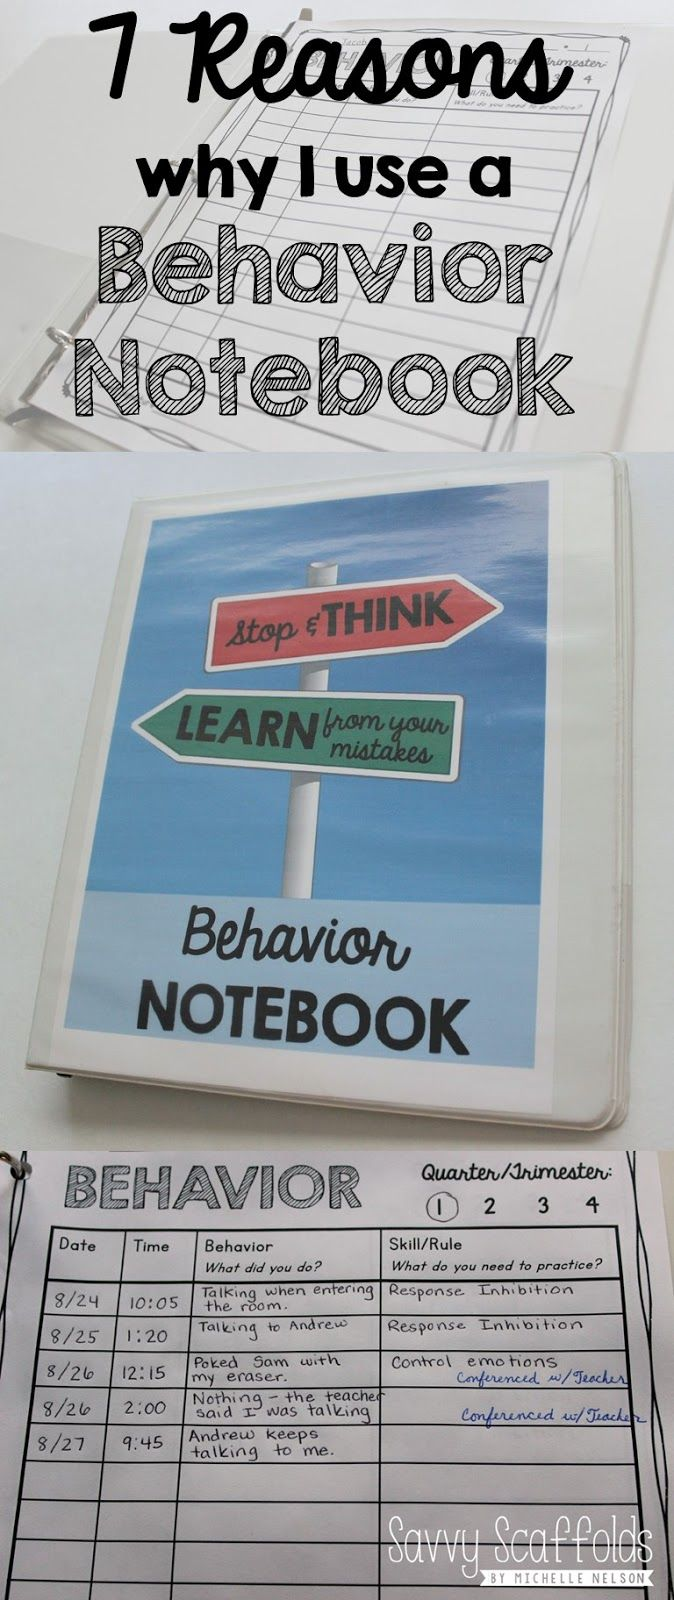 best ideas about behavior management classroom savvy scaffolds 7 reasons why i use a behavior notebook in my classroom